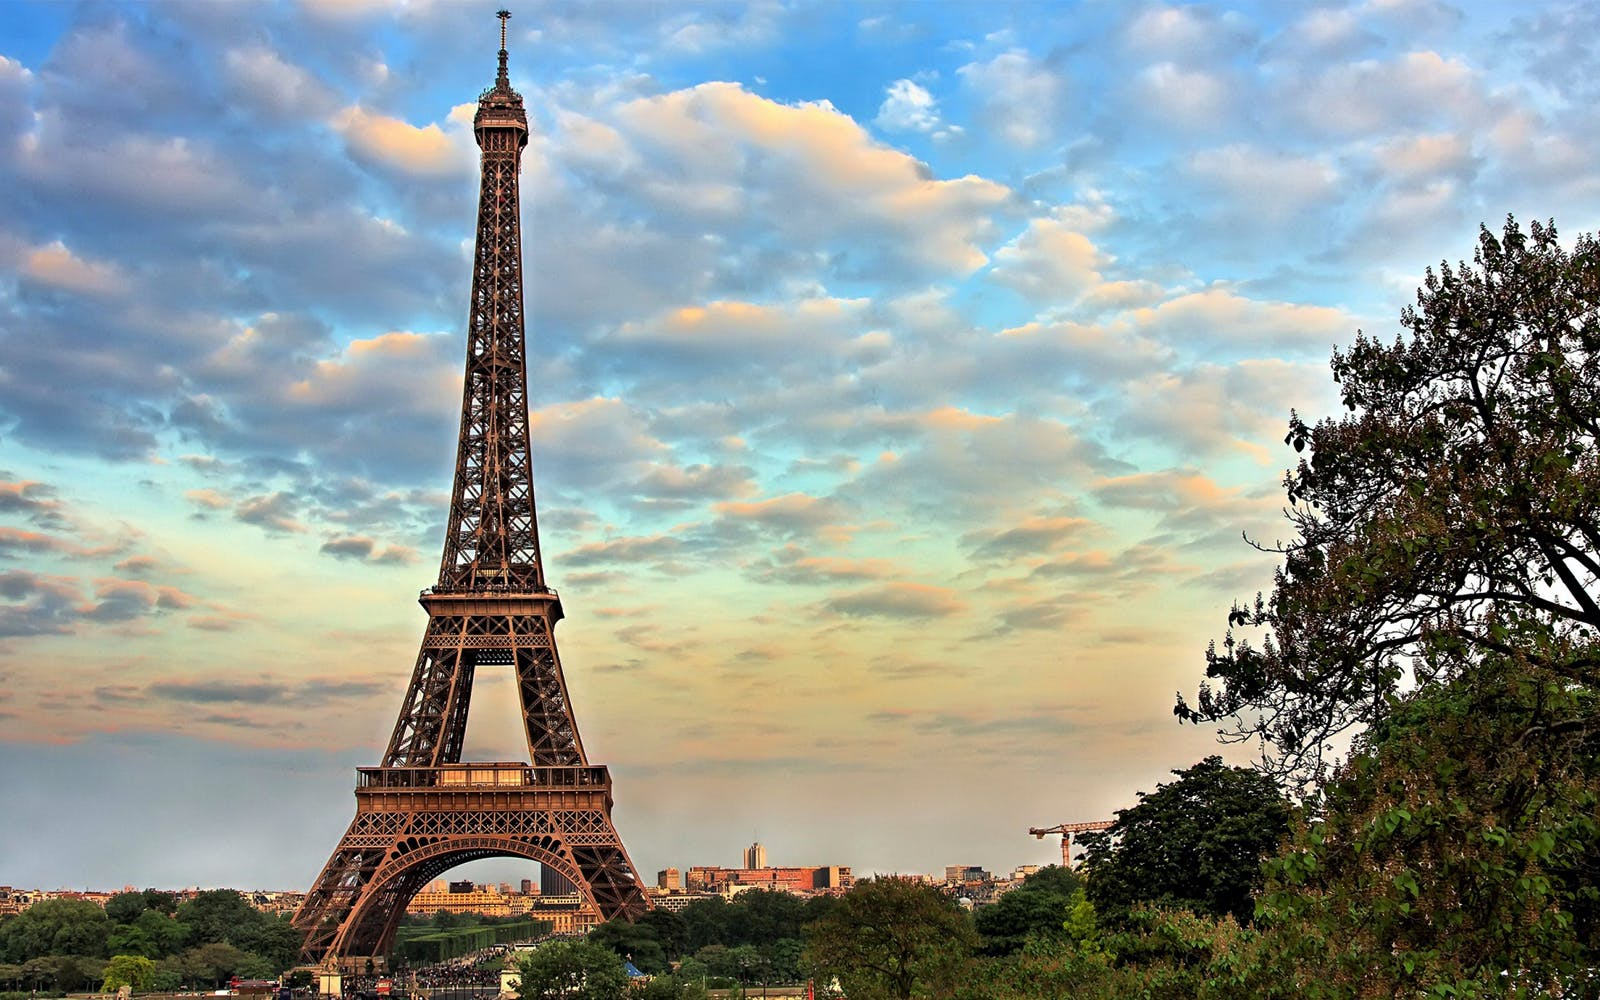 Skip the Line: Eiffel Tower, Louvre Museum & Notre Dame